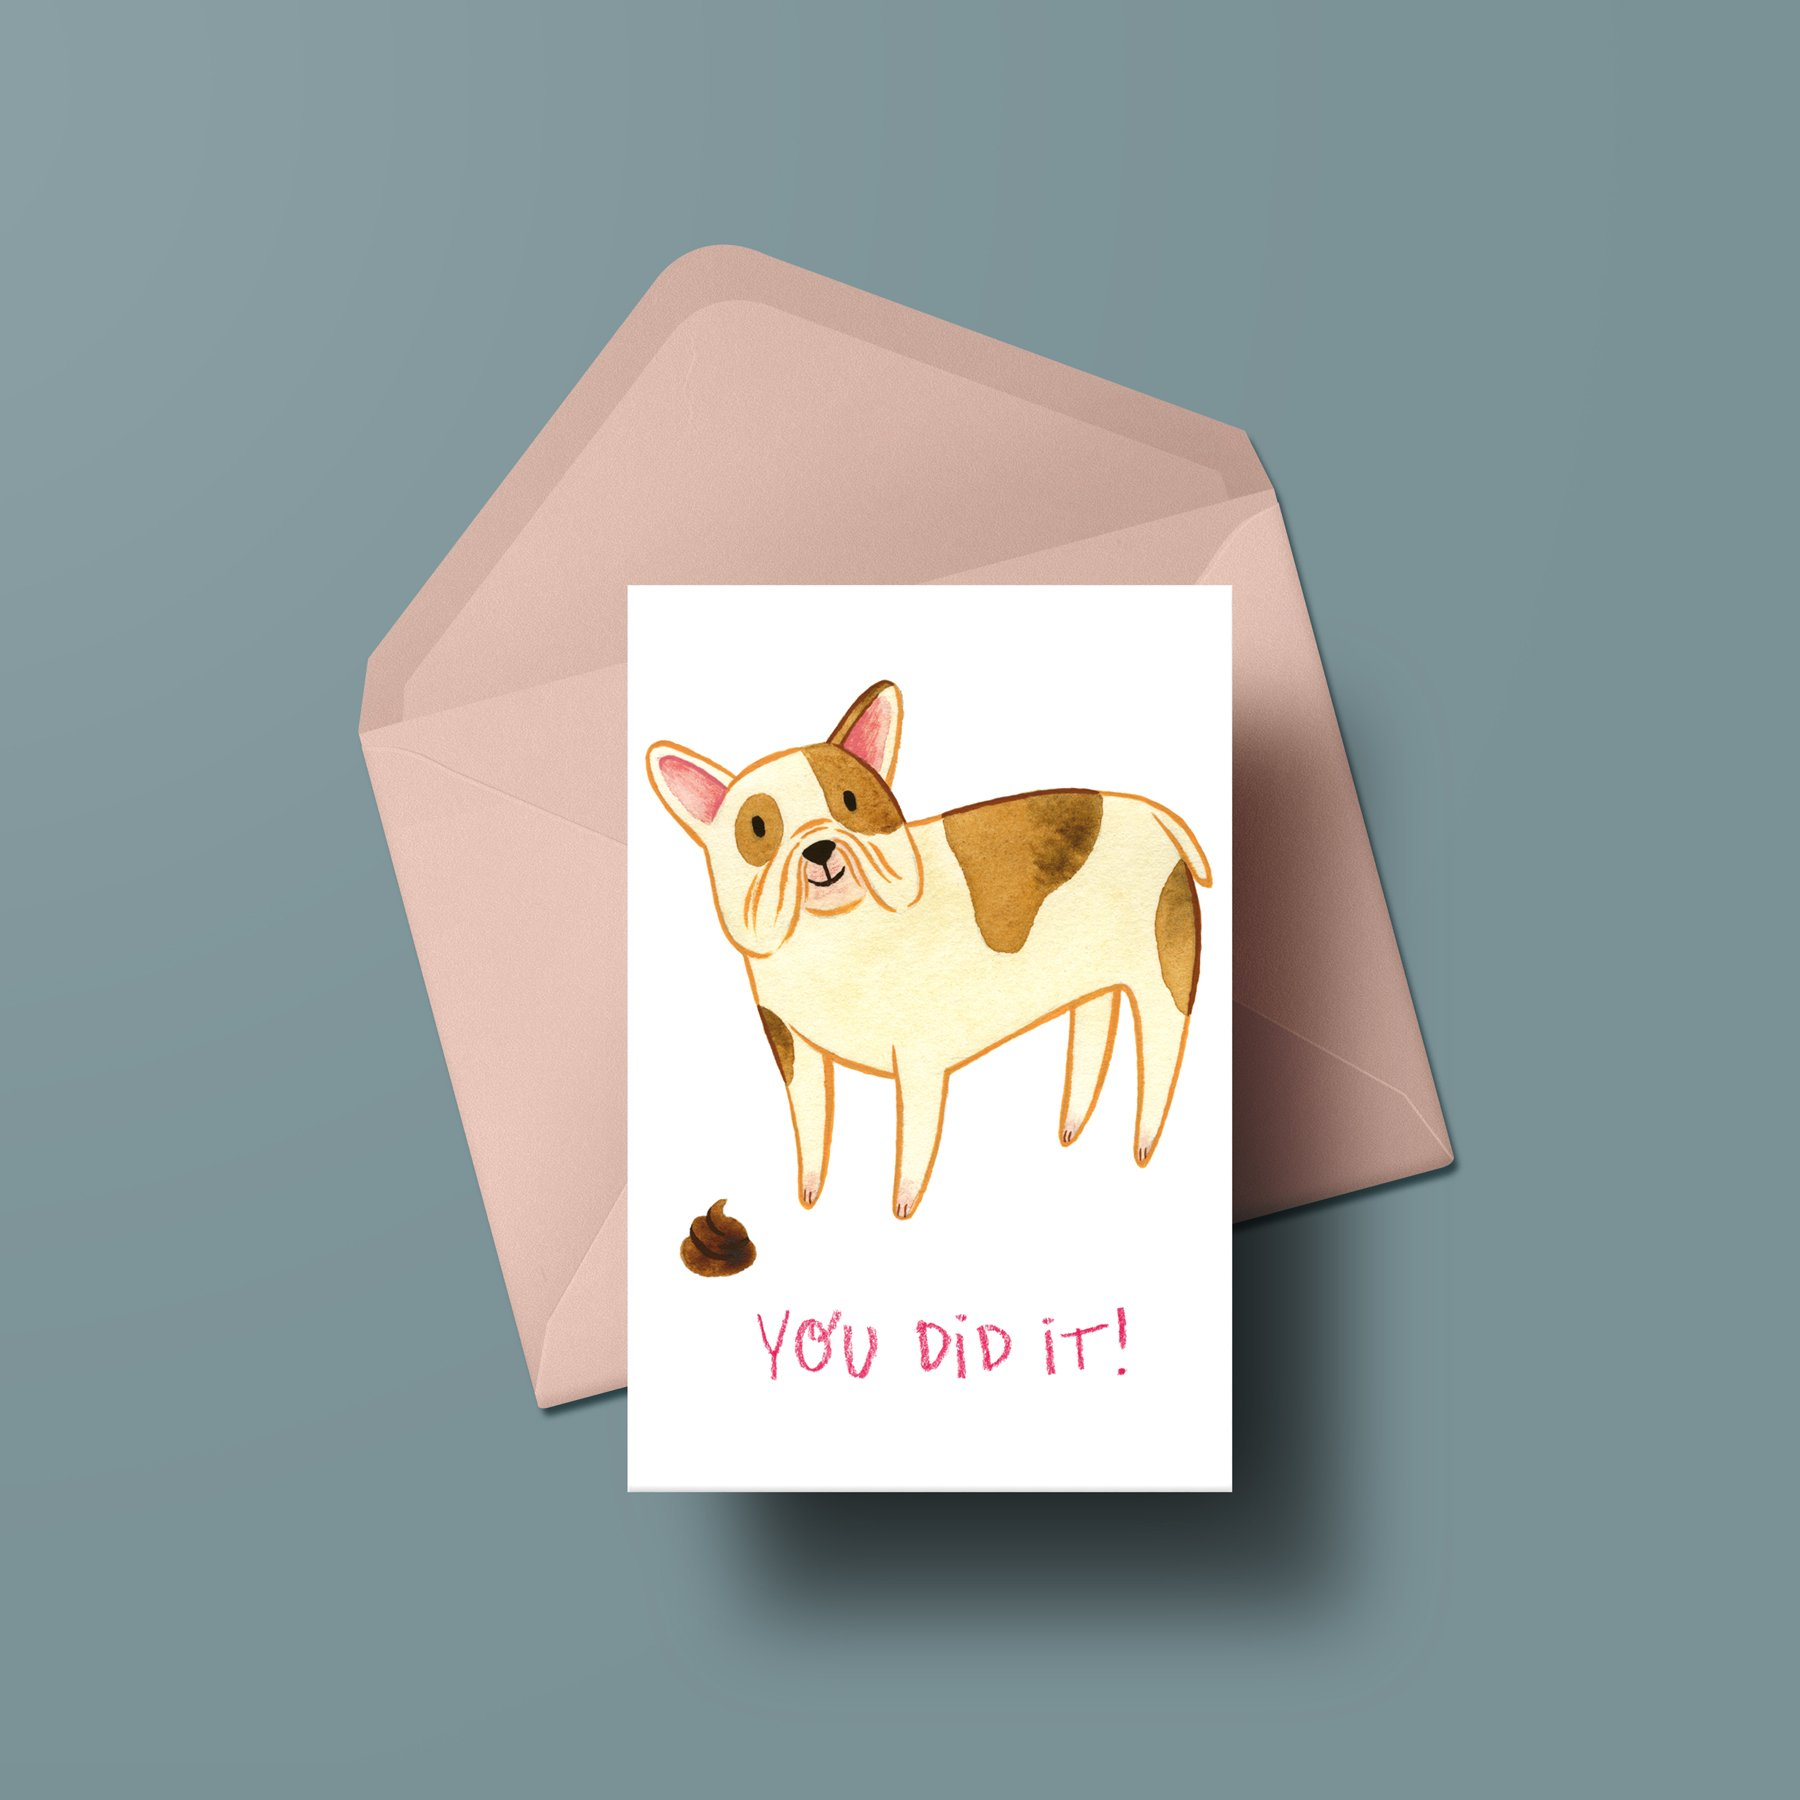 You Did It Card Pink Envelopes Cards Card Stock